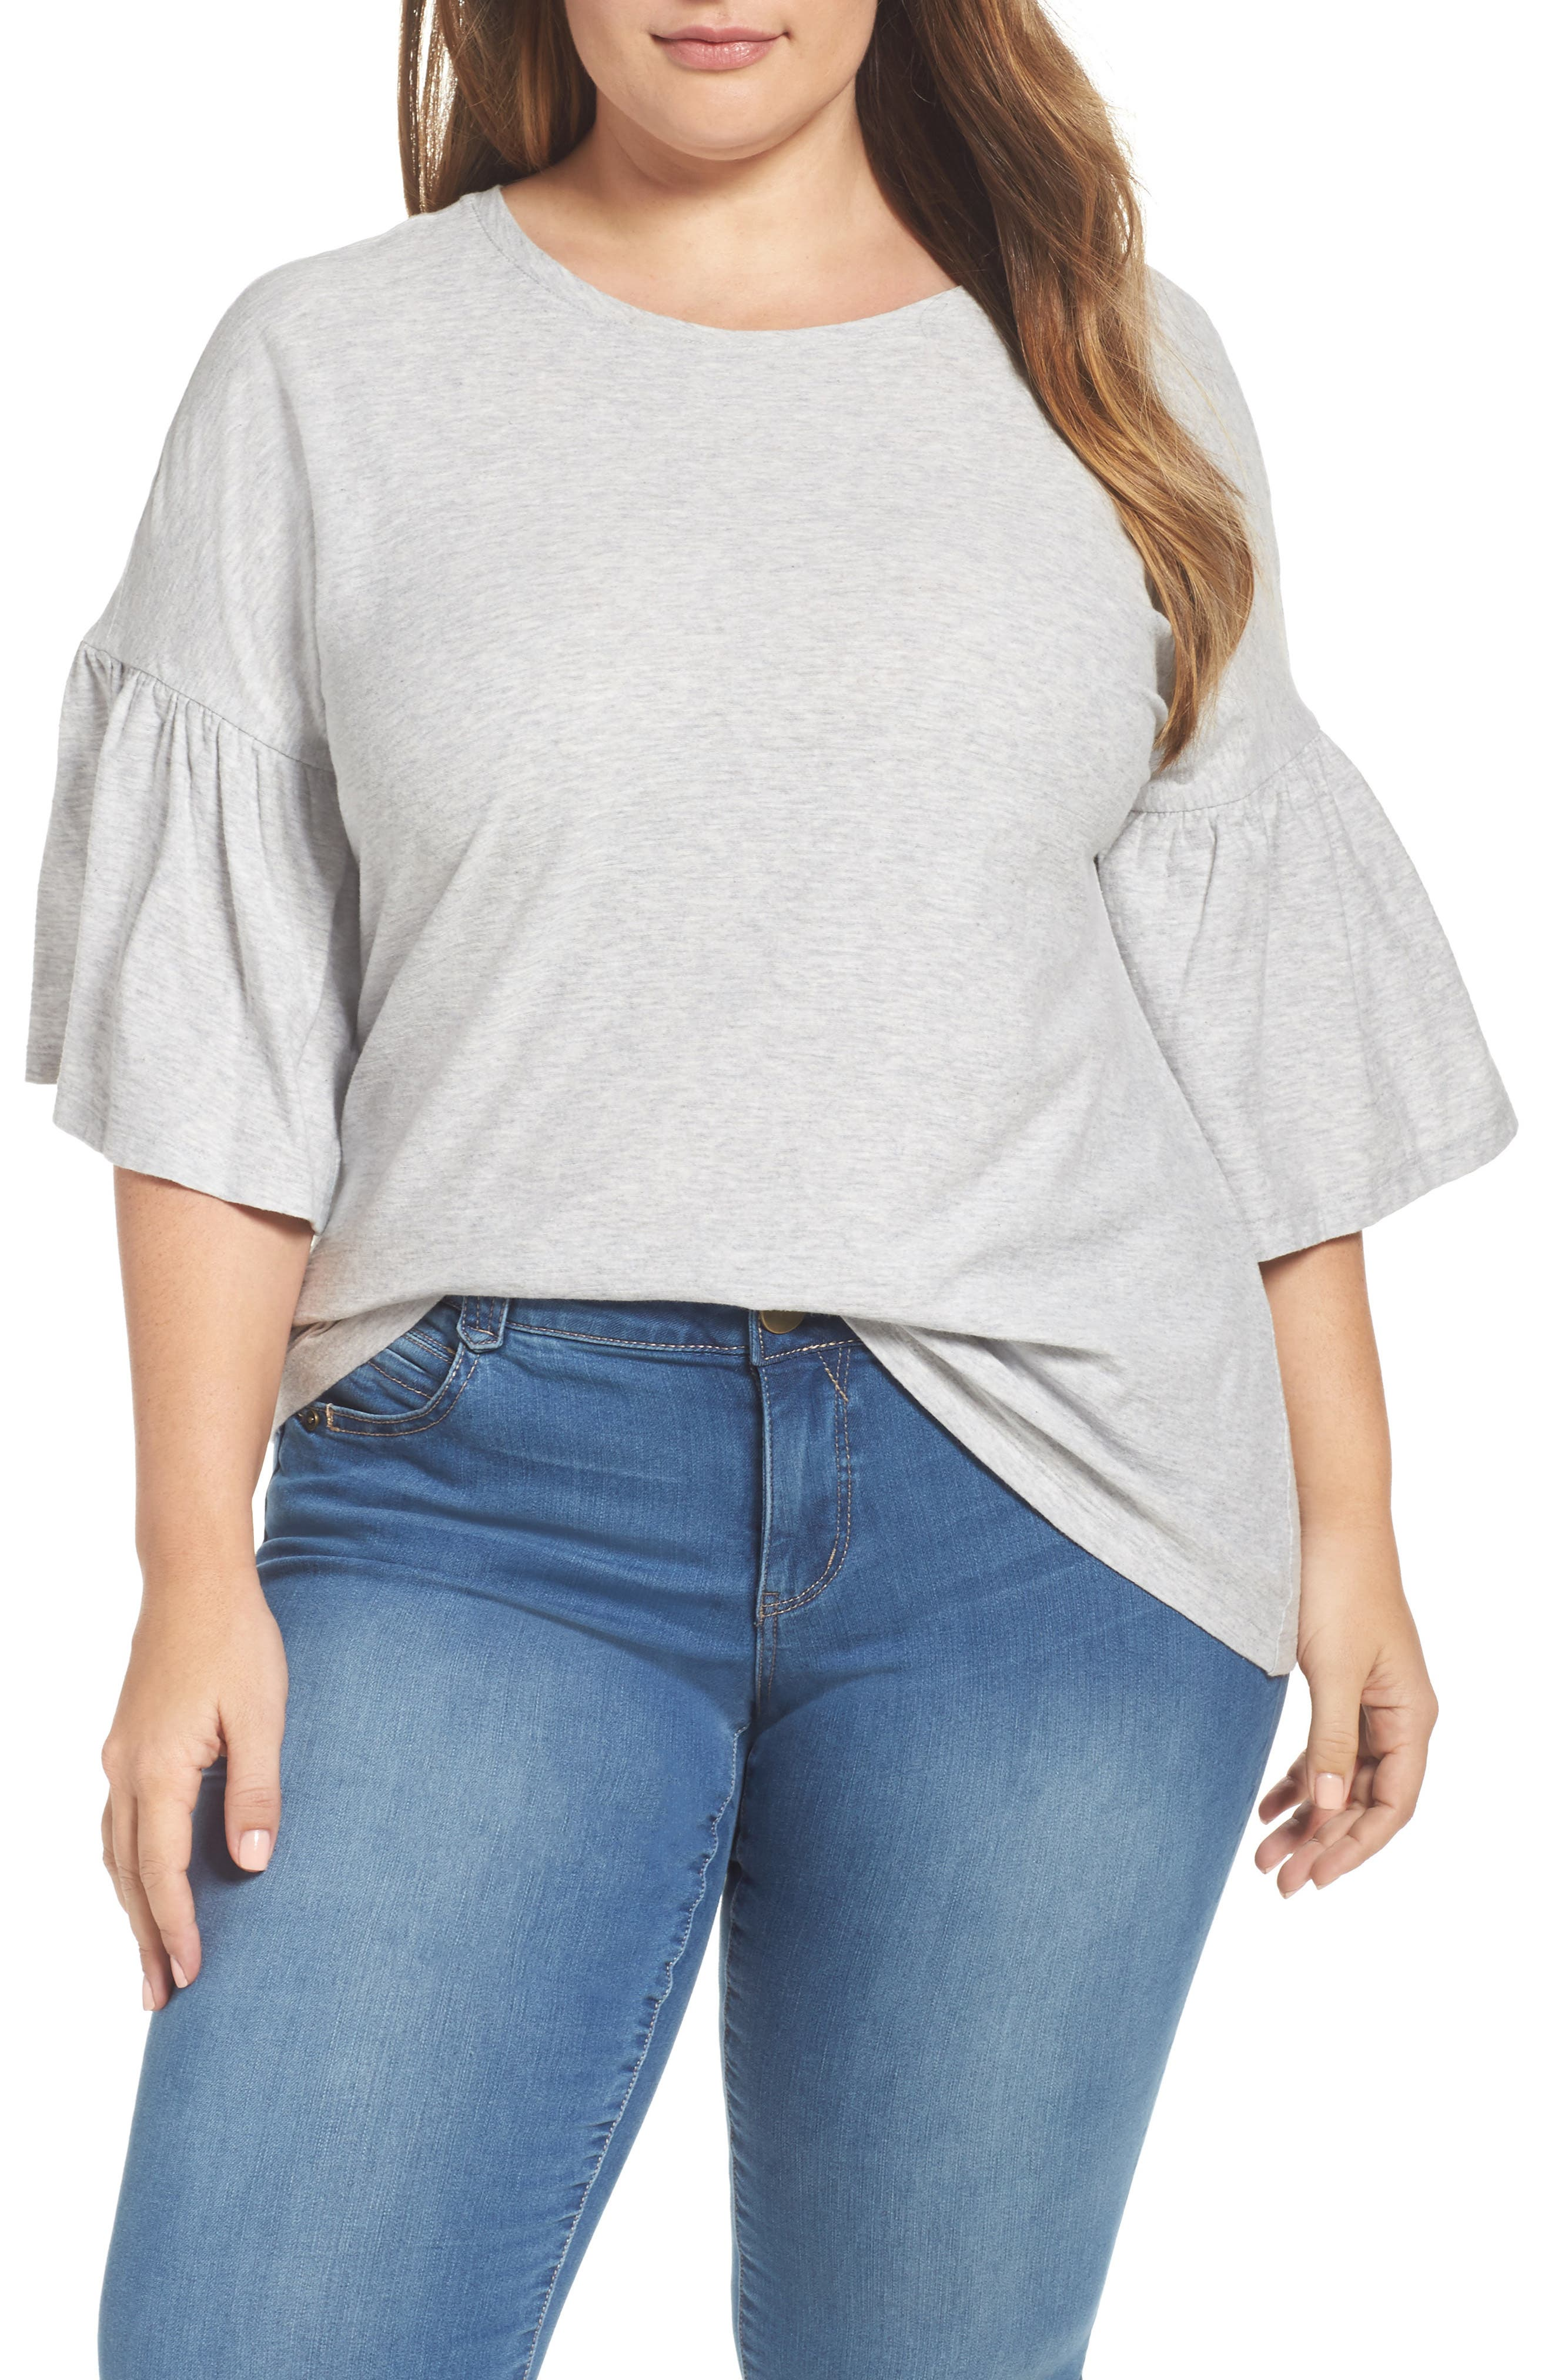 Vince Camuto Relaxed Bell Sleeve Cotton Tee,                         Main,                         color, Grey Heather